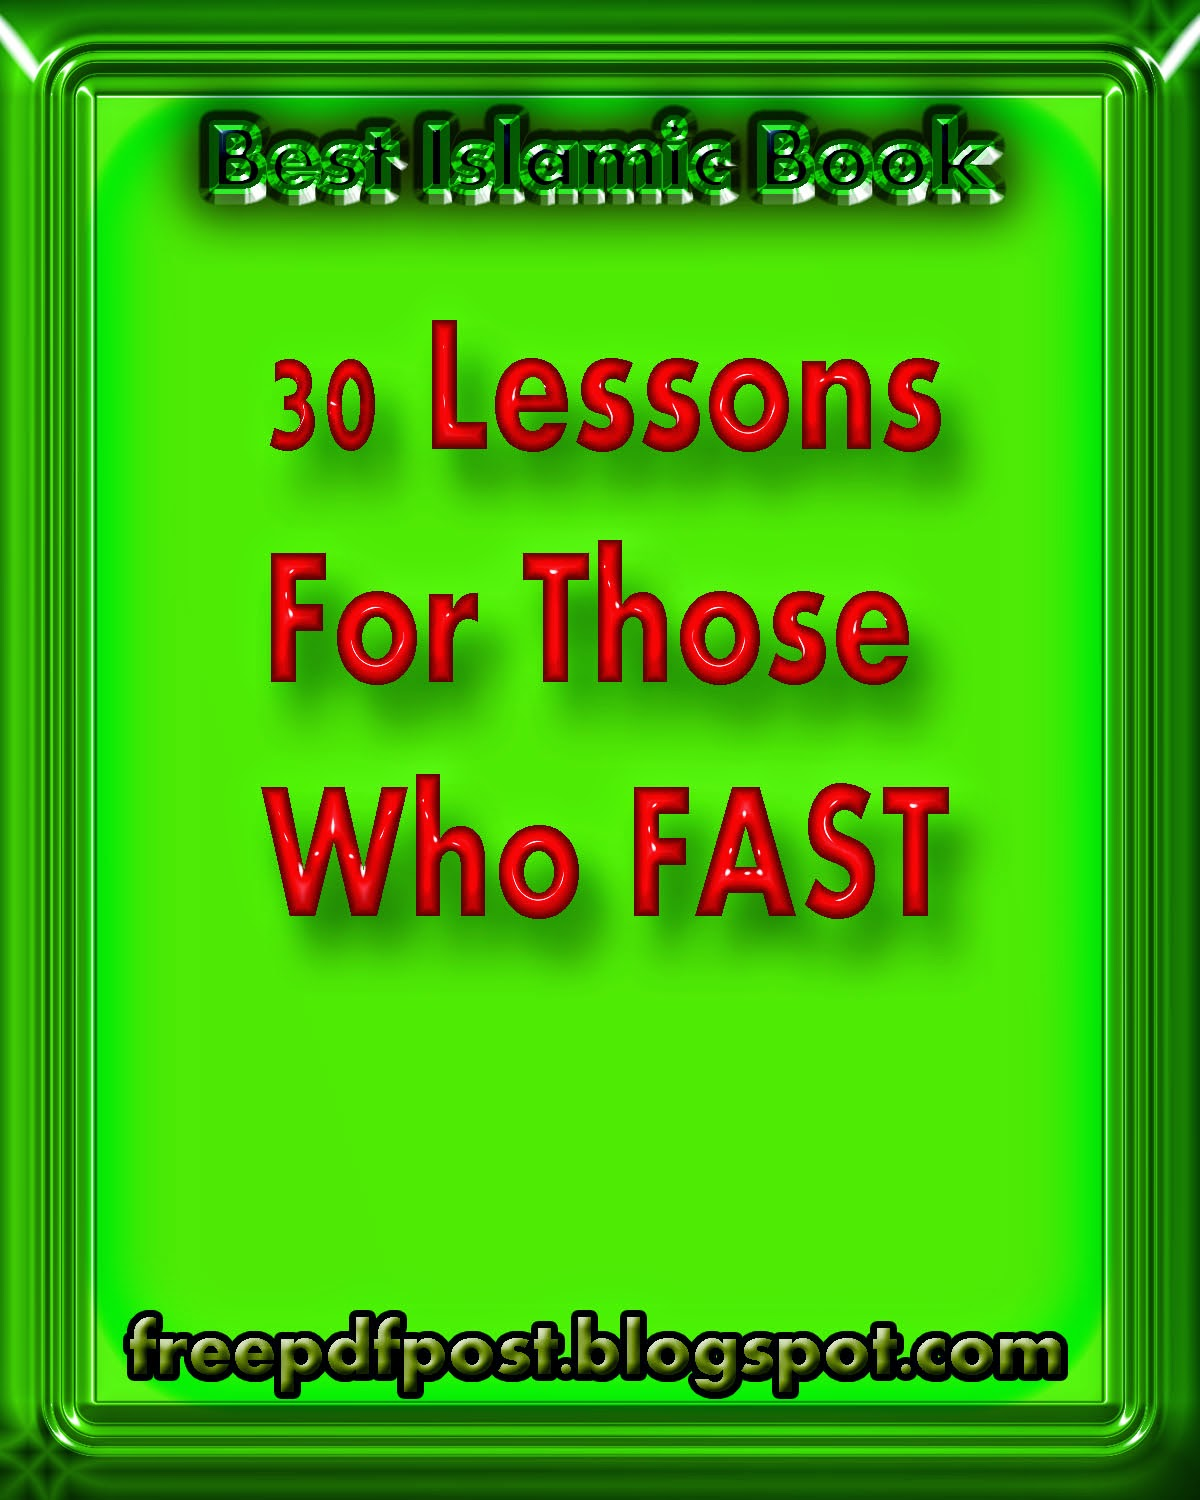 https://www.4shared.com/office/0rC6Szpjba/30_lessons_for_those_who_fast.html